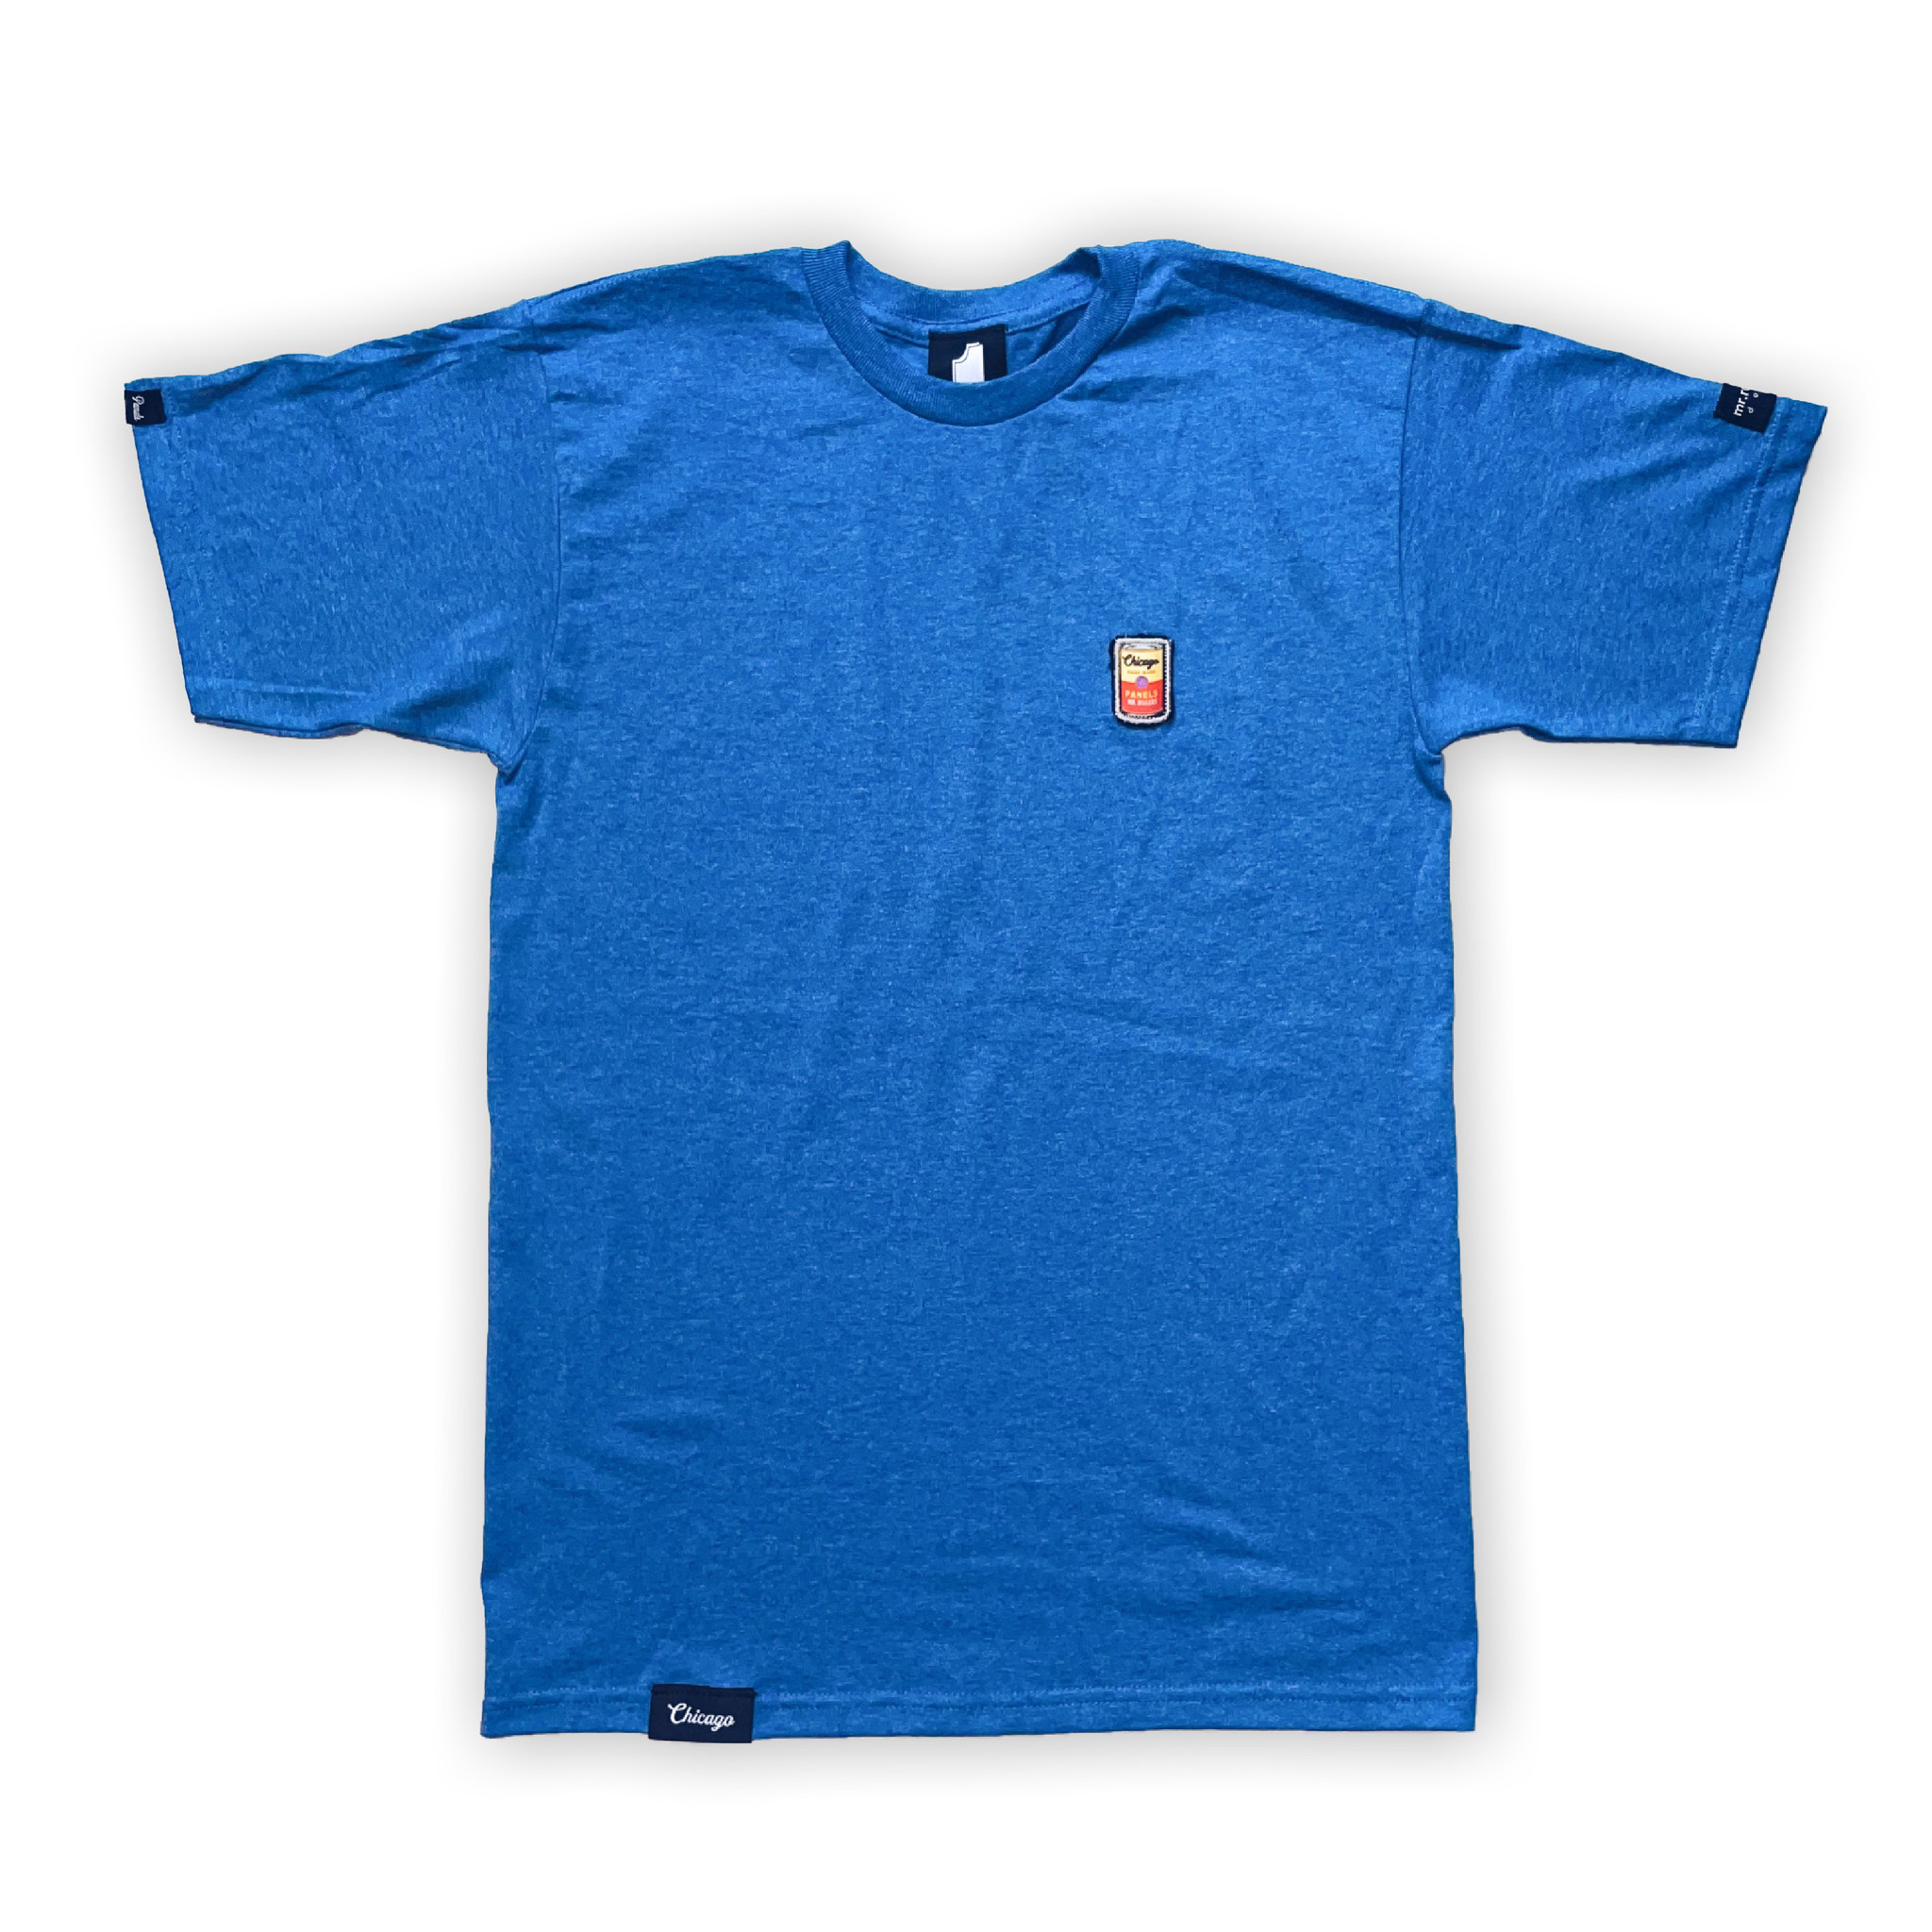 Panels Panels Americana Campbell patch tee Blue